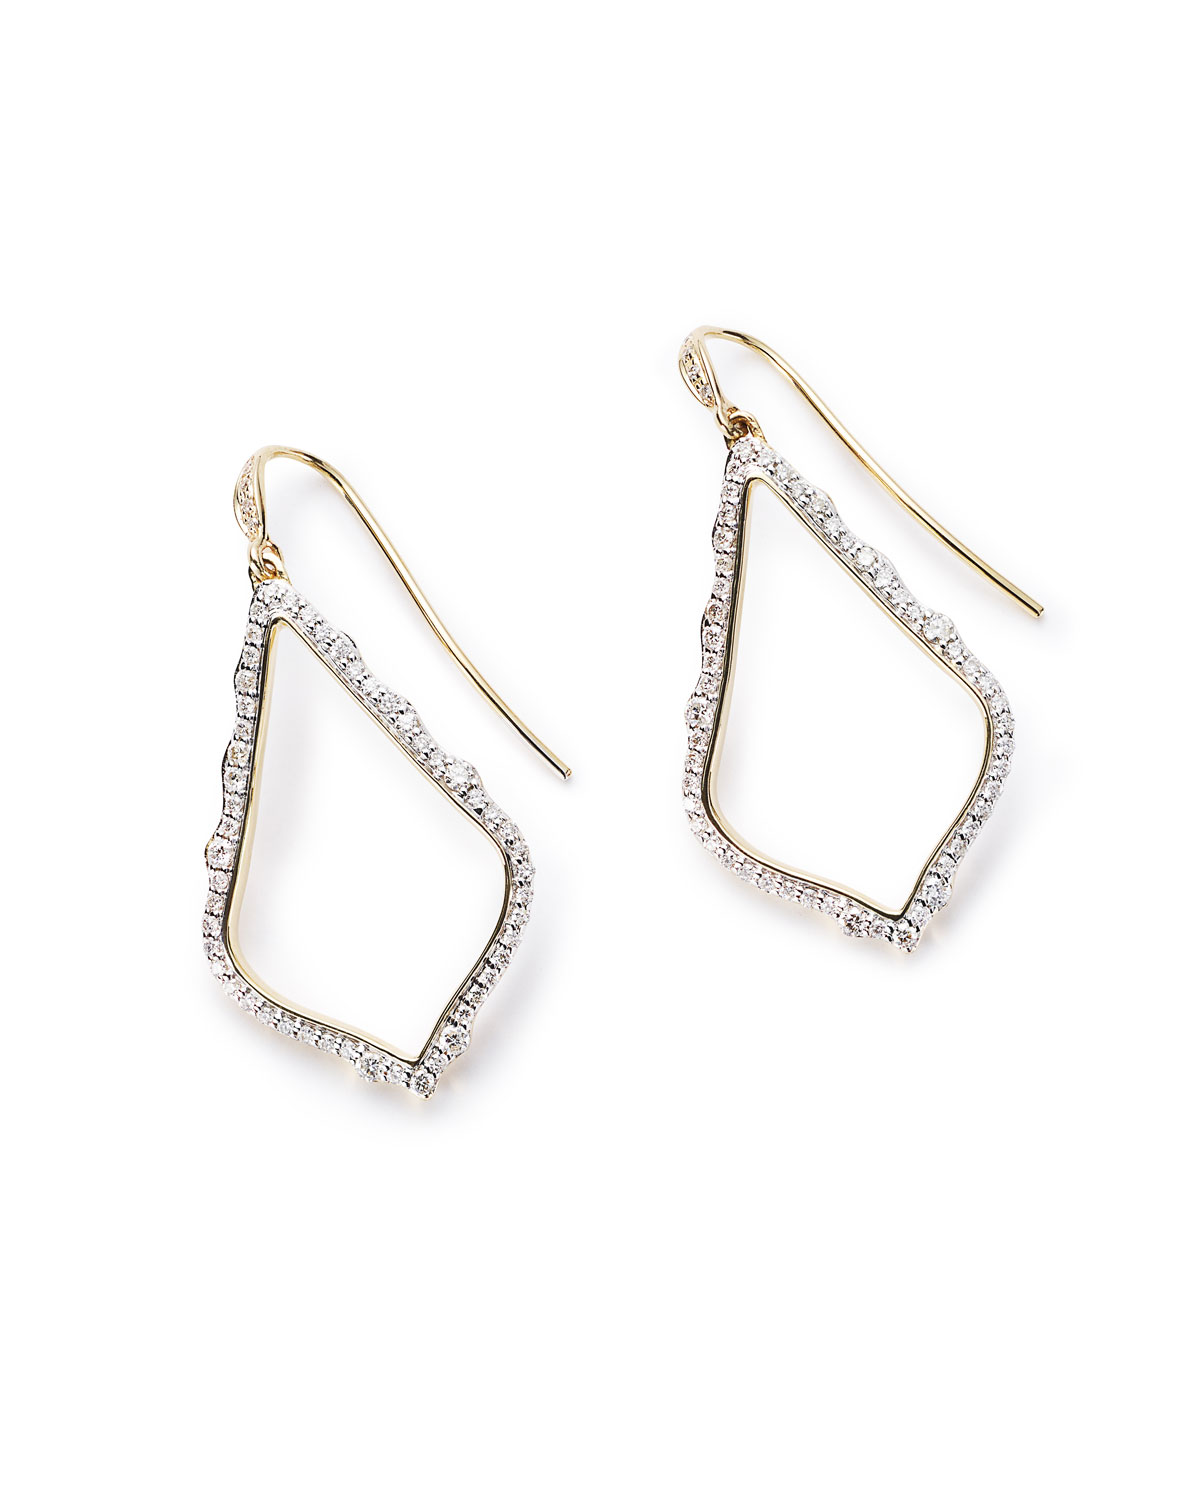 Sophia 14k Gold & Diamond Drop Earrings